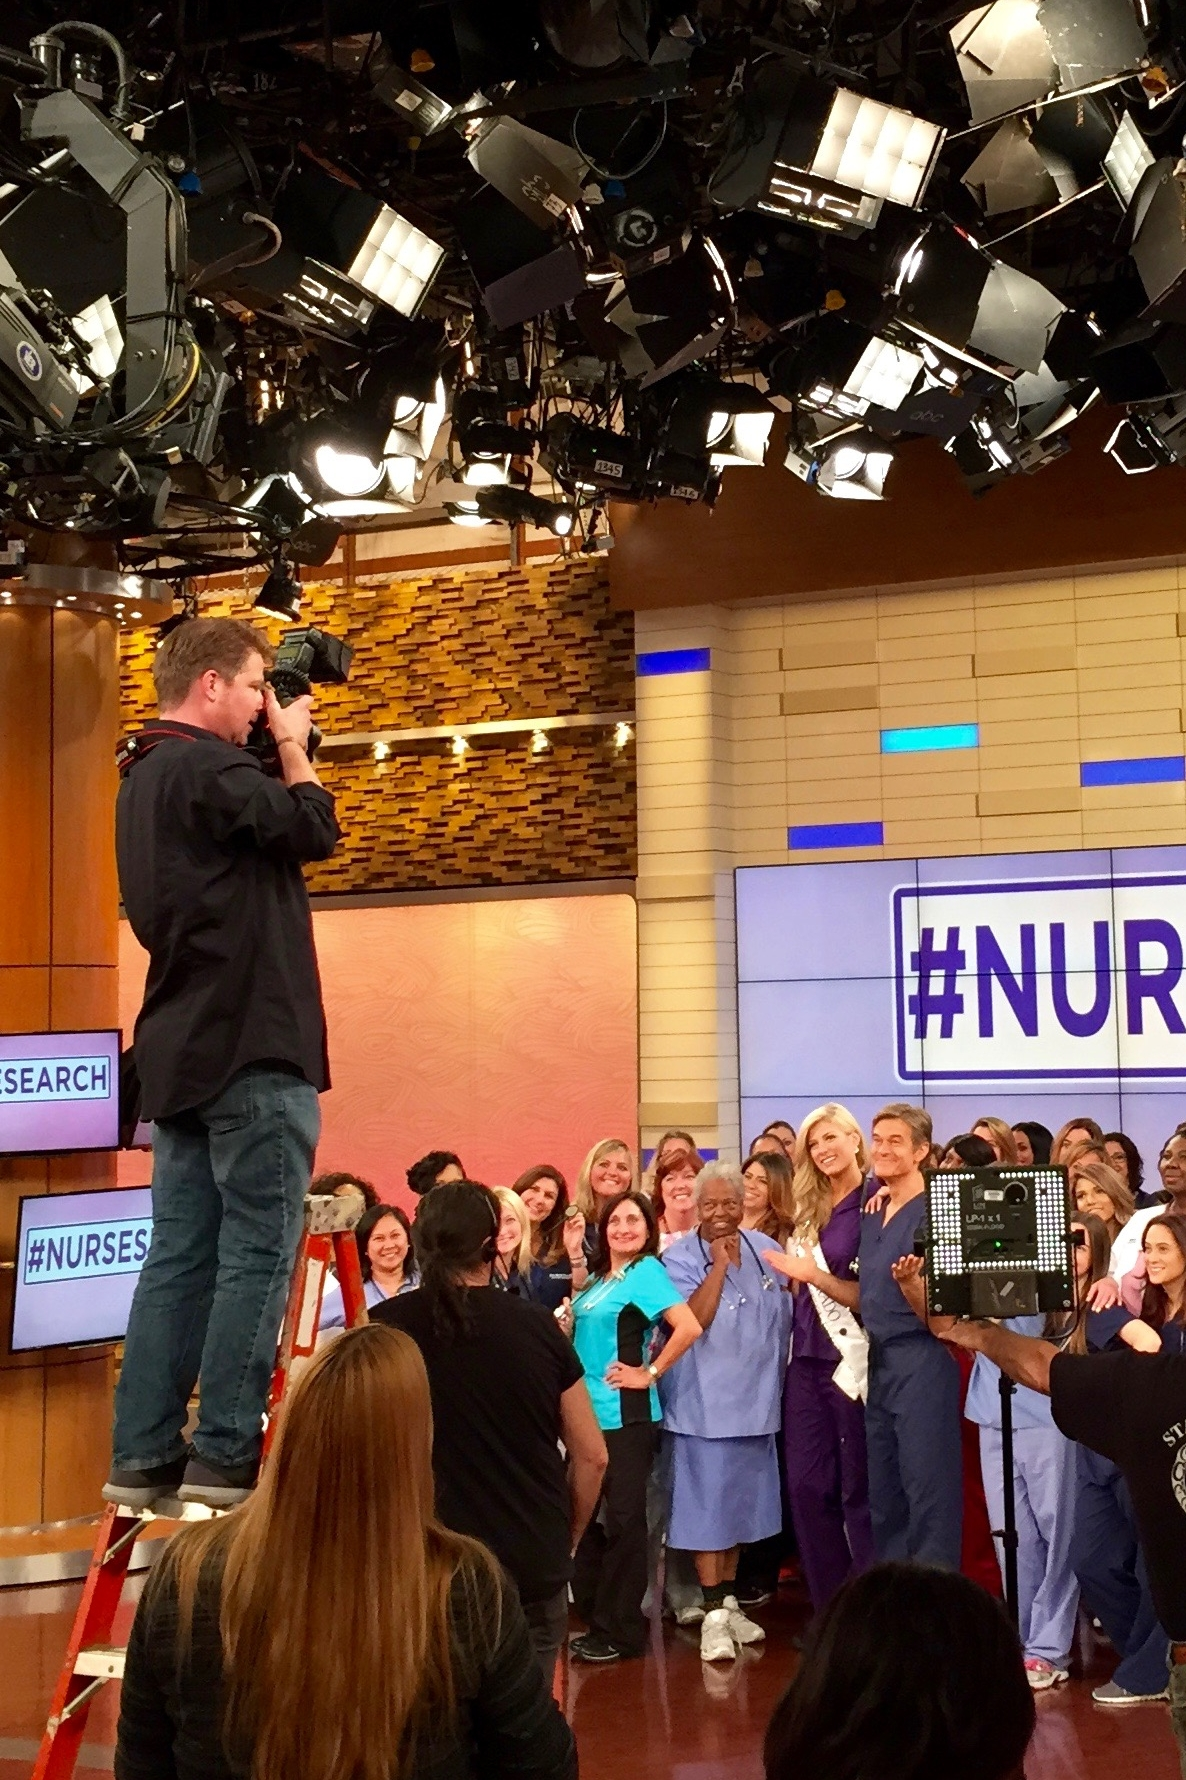 That's me on the ladder getting a large group shot with Dr. Oz and nurses during the nurses search.